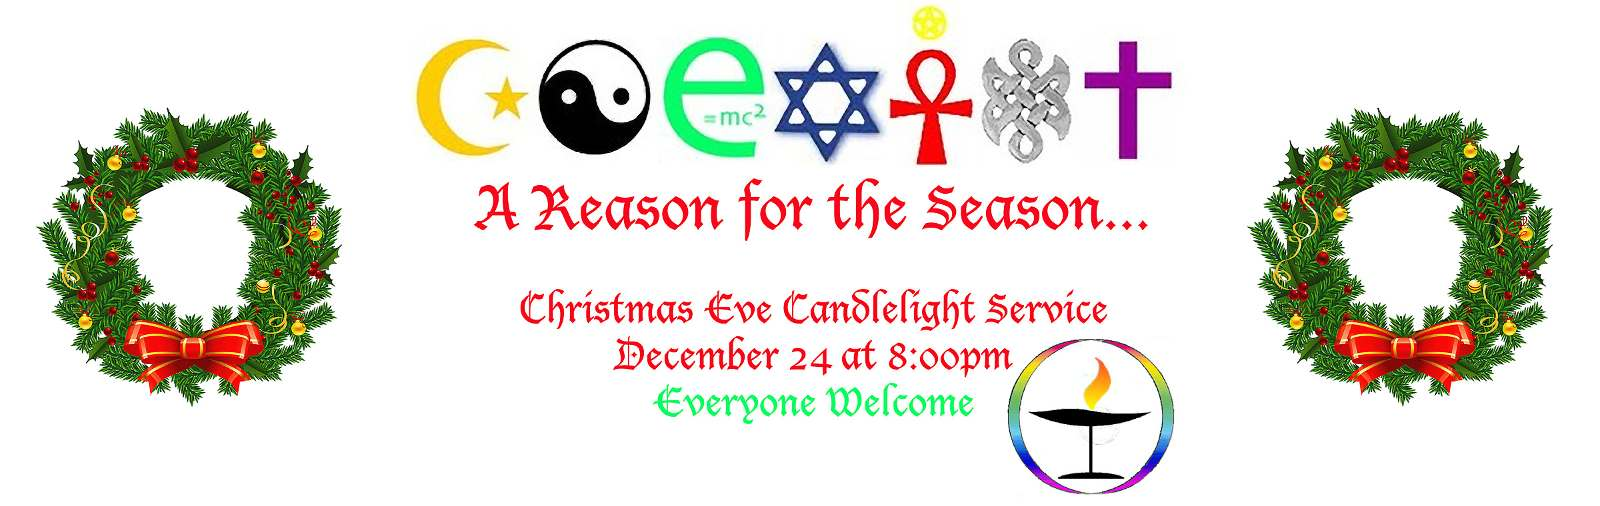 Christmas Eve Candlelight Service, December 24 at 8:00pm. All Welcome